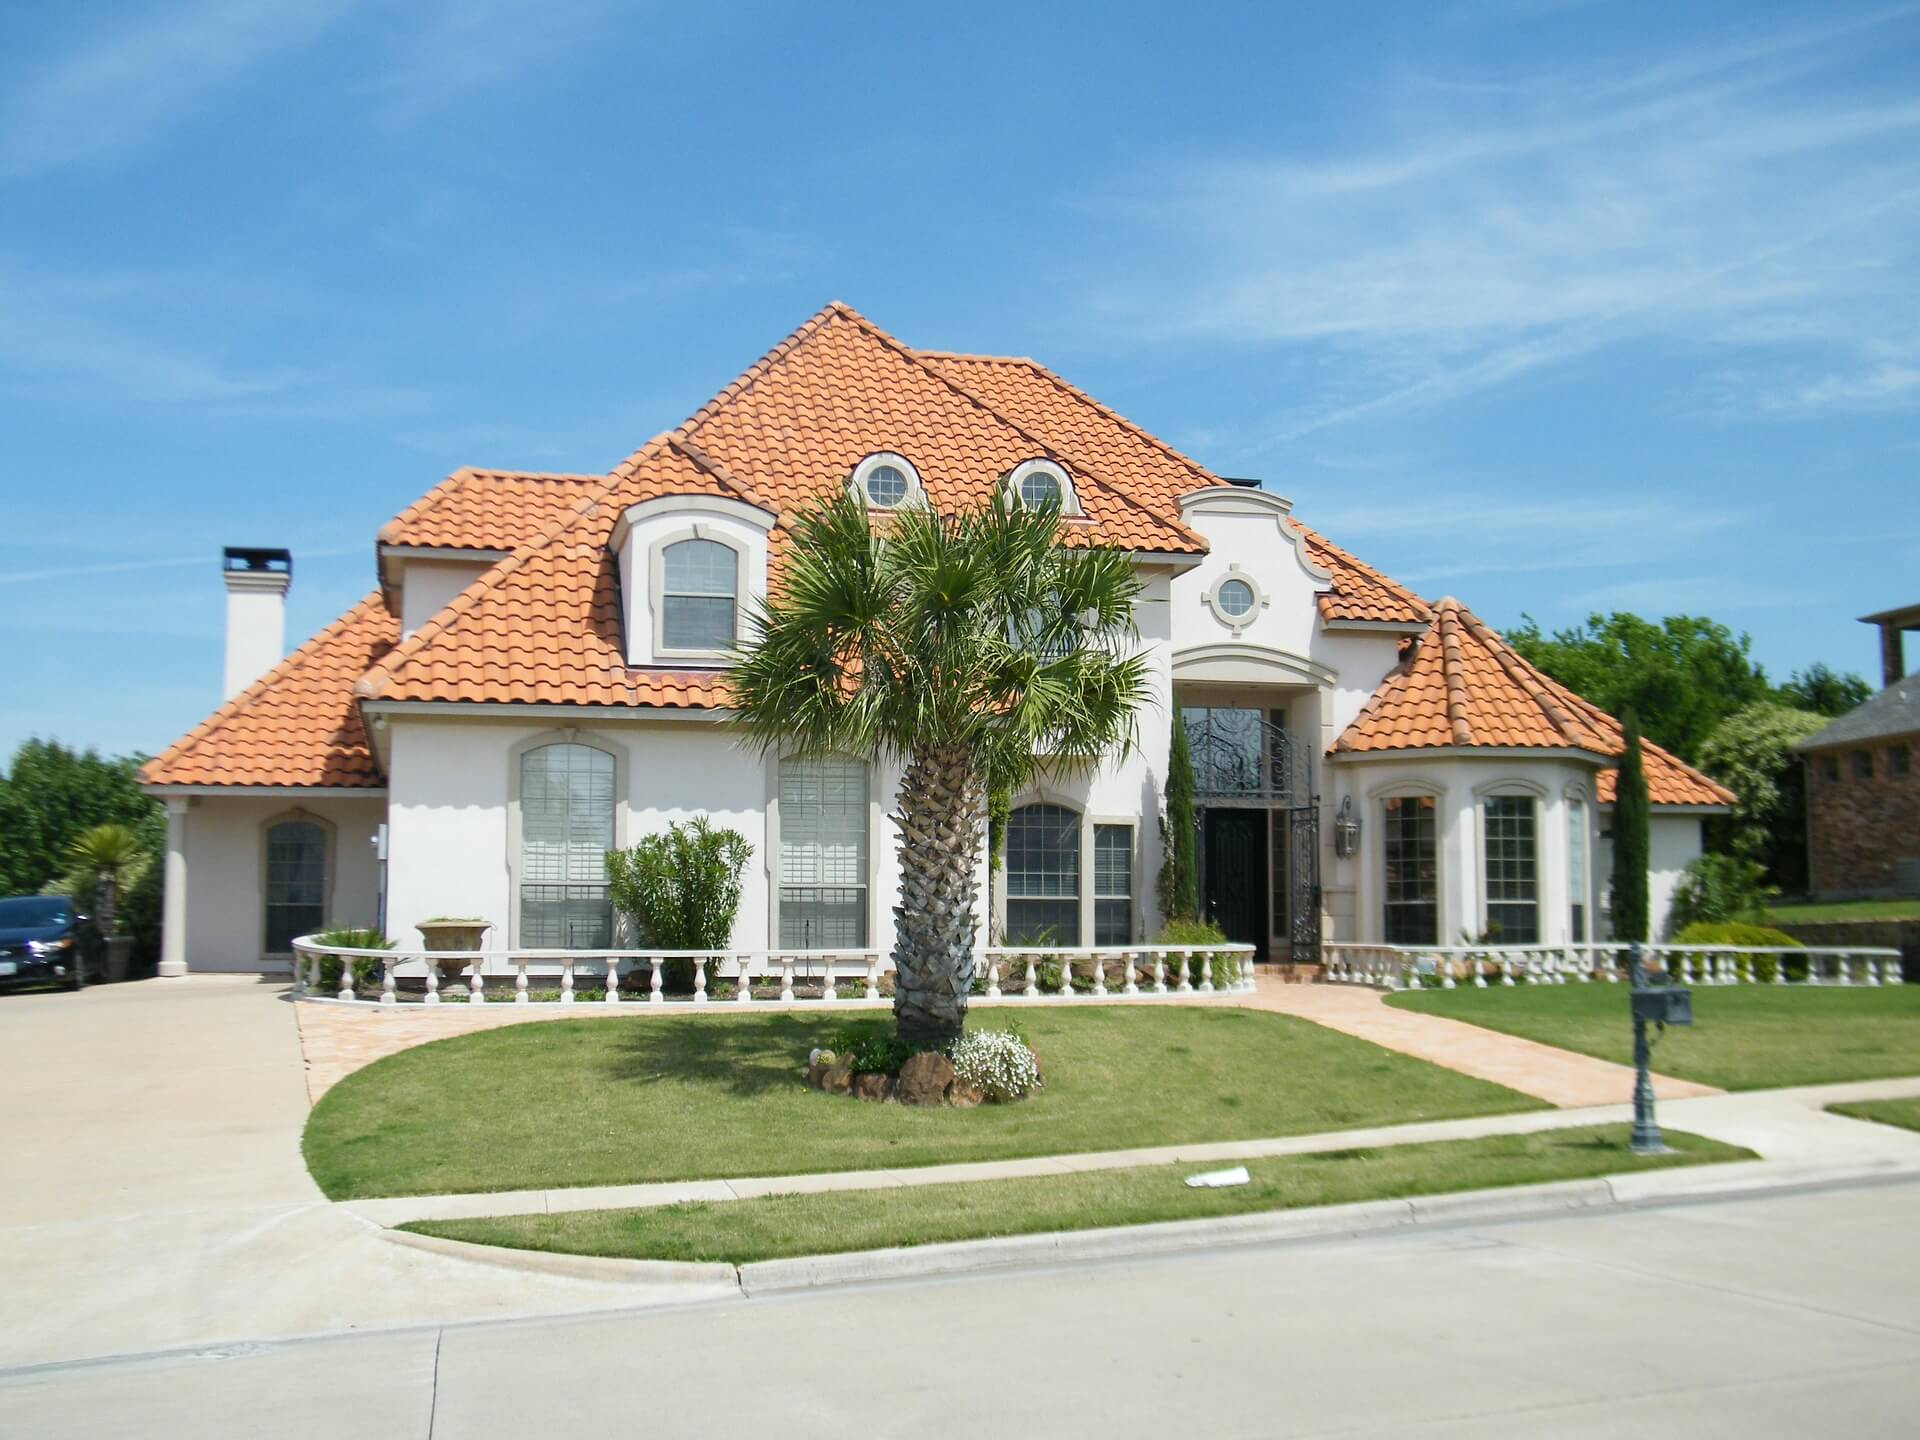 Best Paint Colors And Design Ideas For Spanish Style Homes